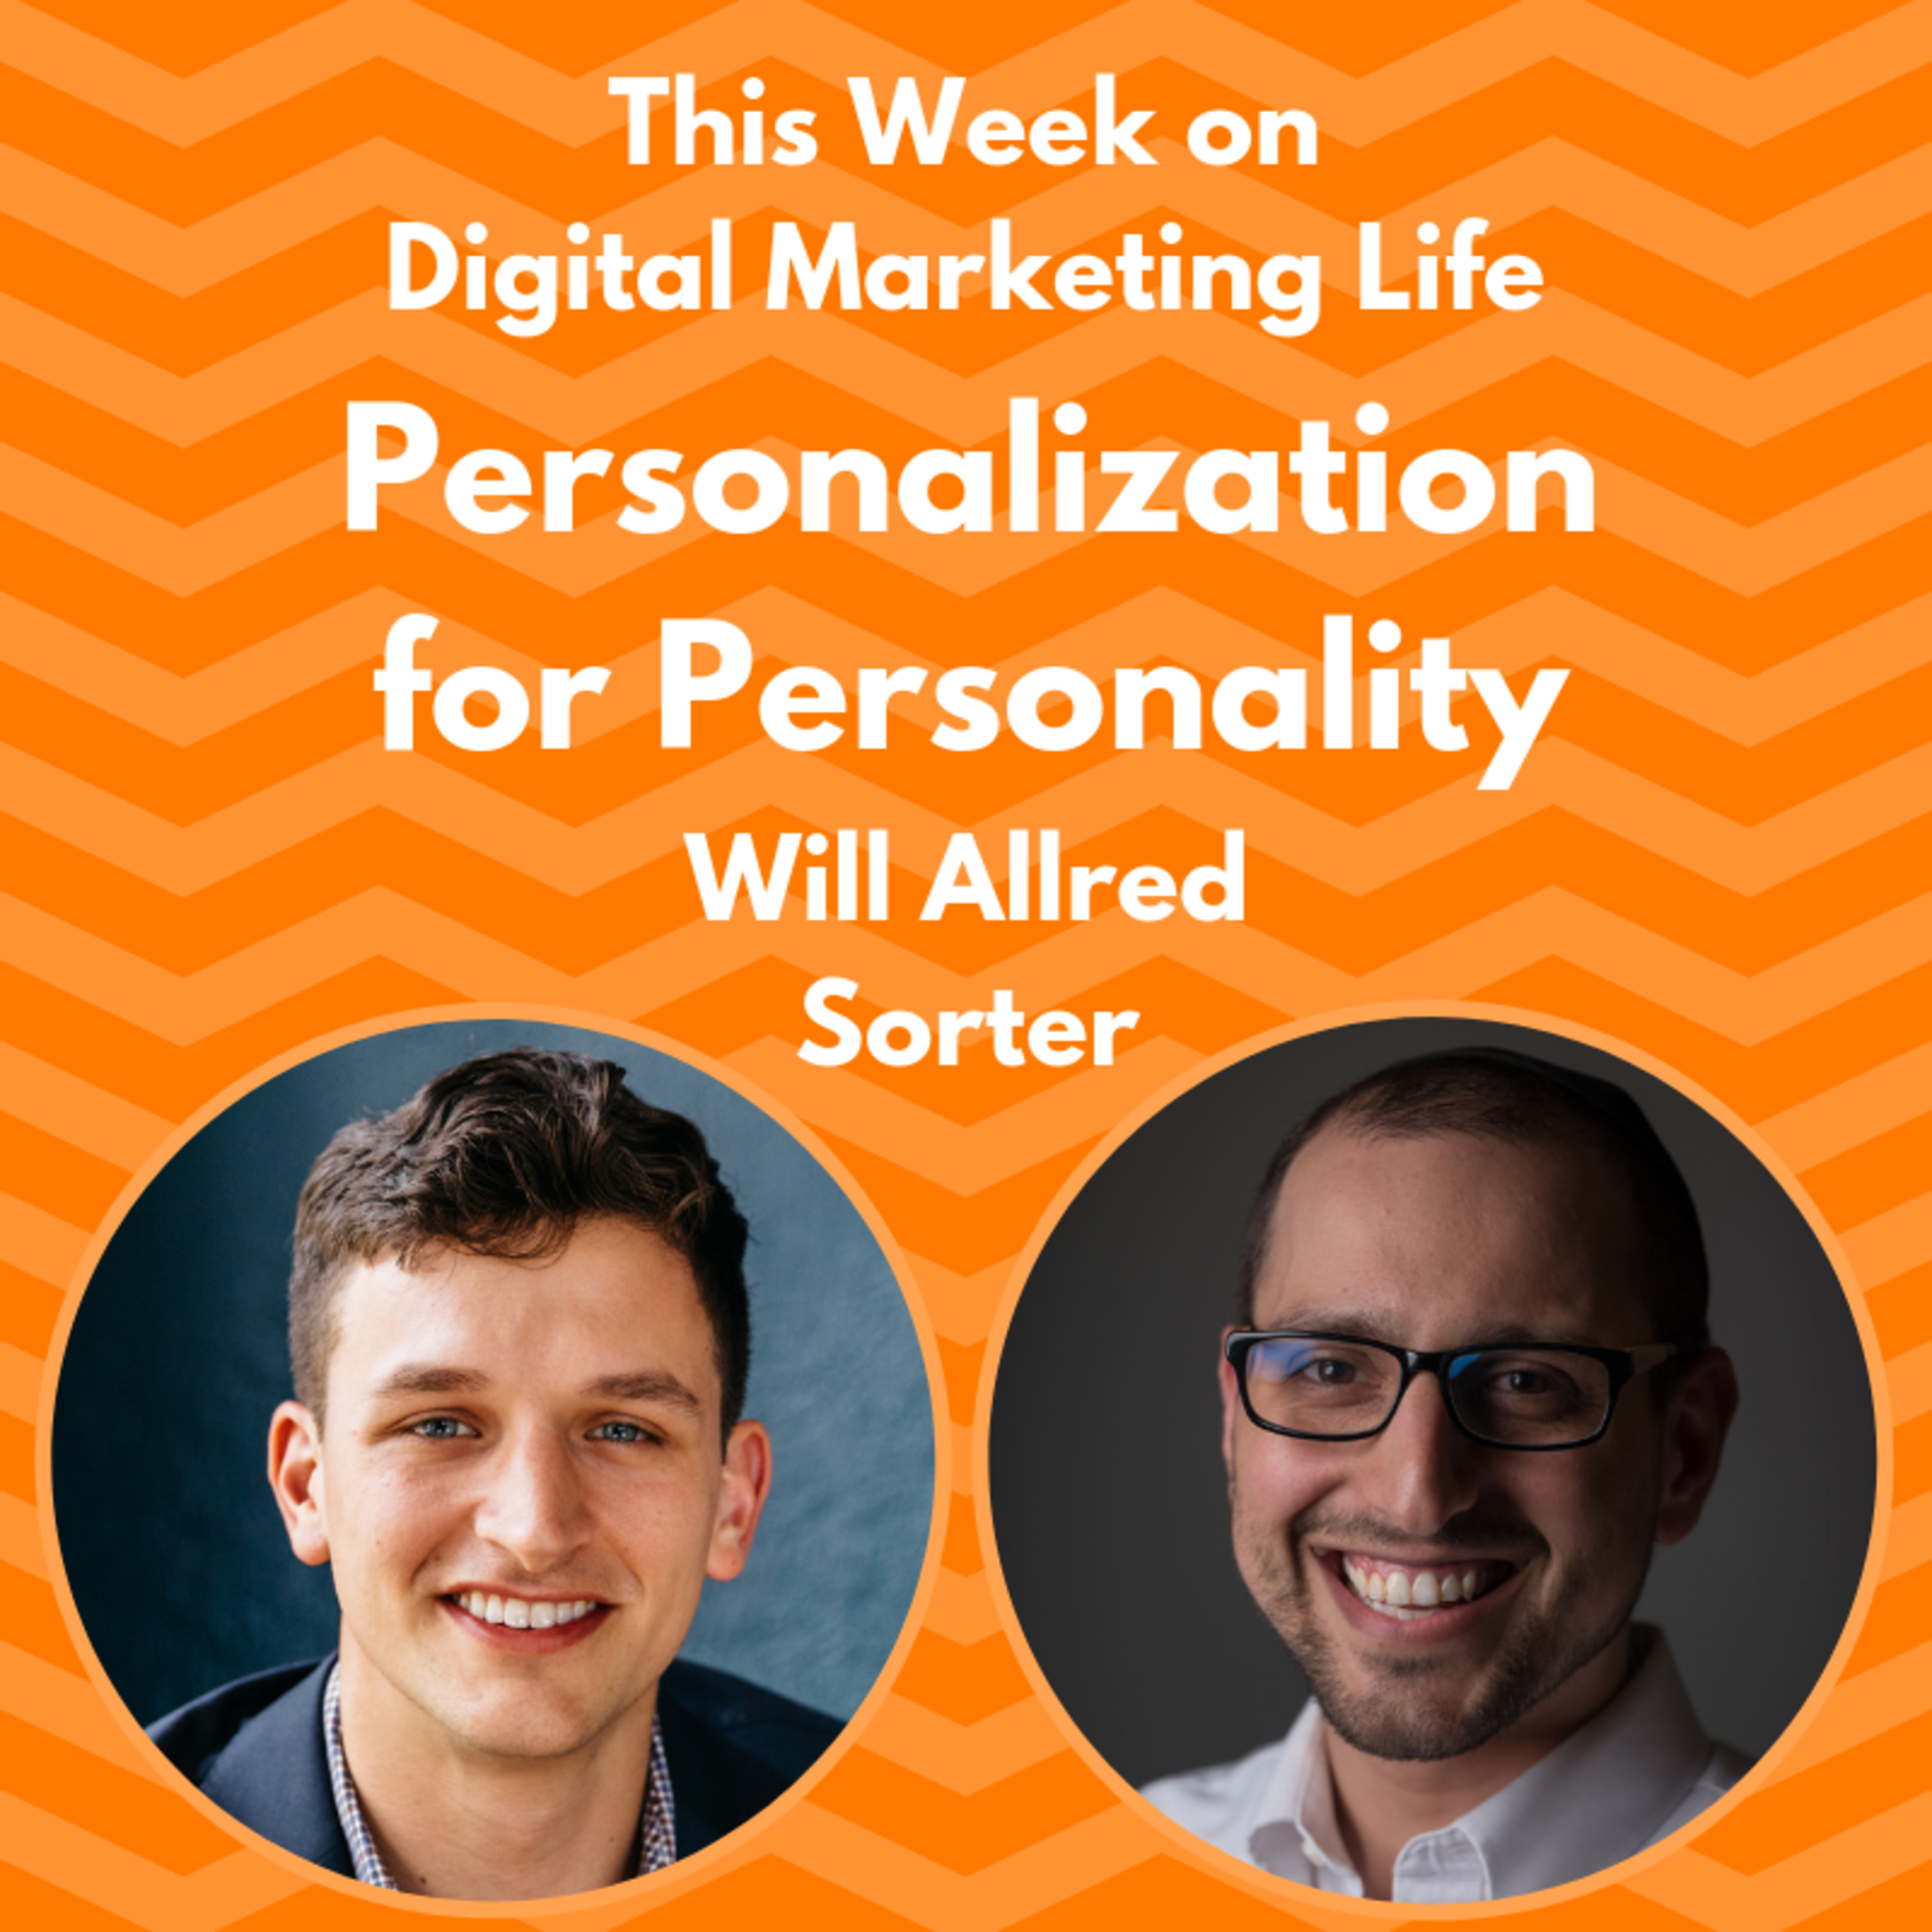 16 - Personalization for Personality - Will Allred of Sorter